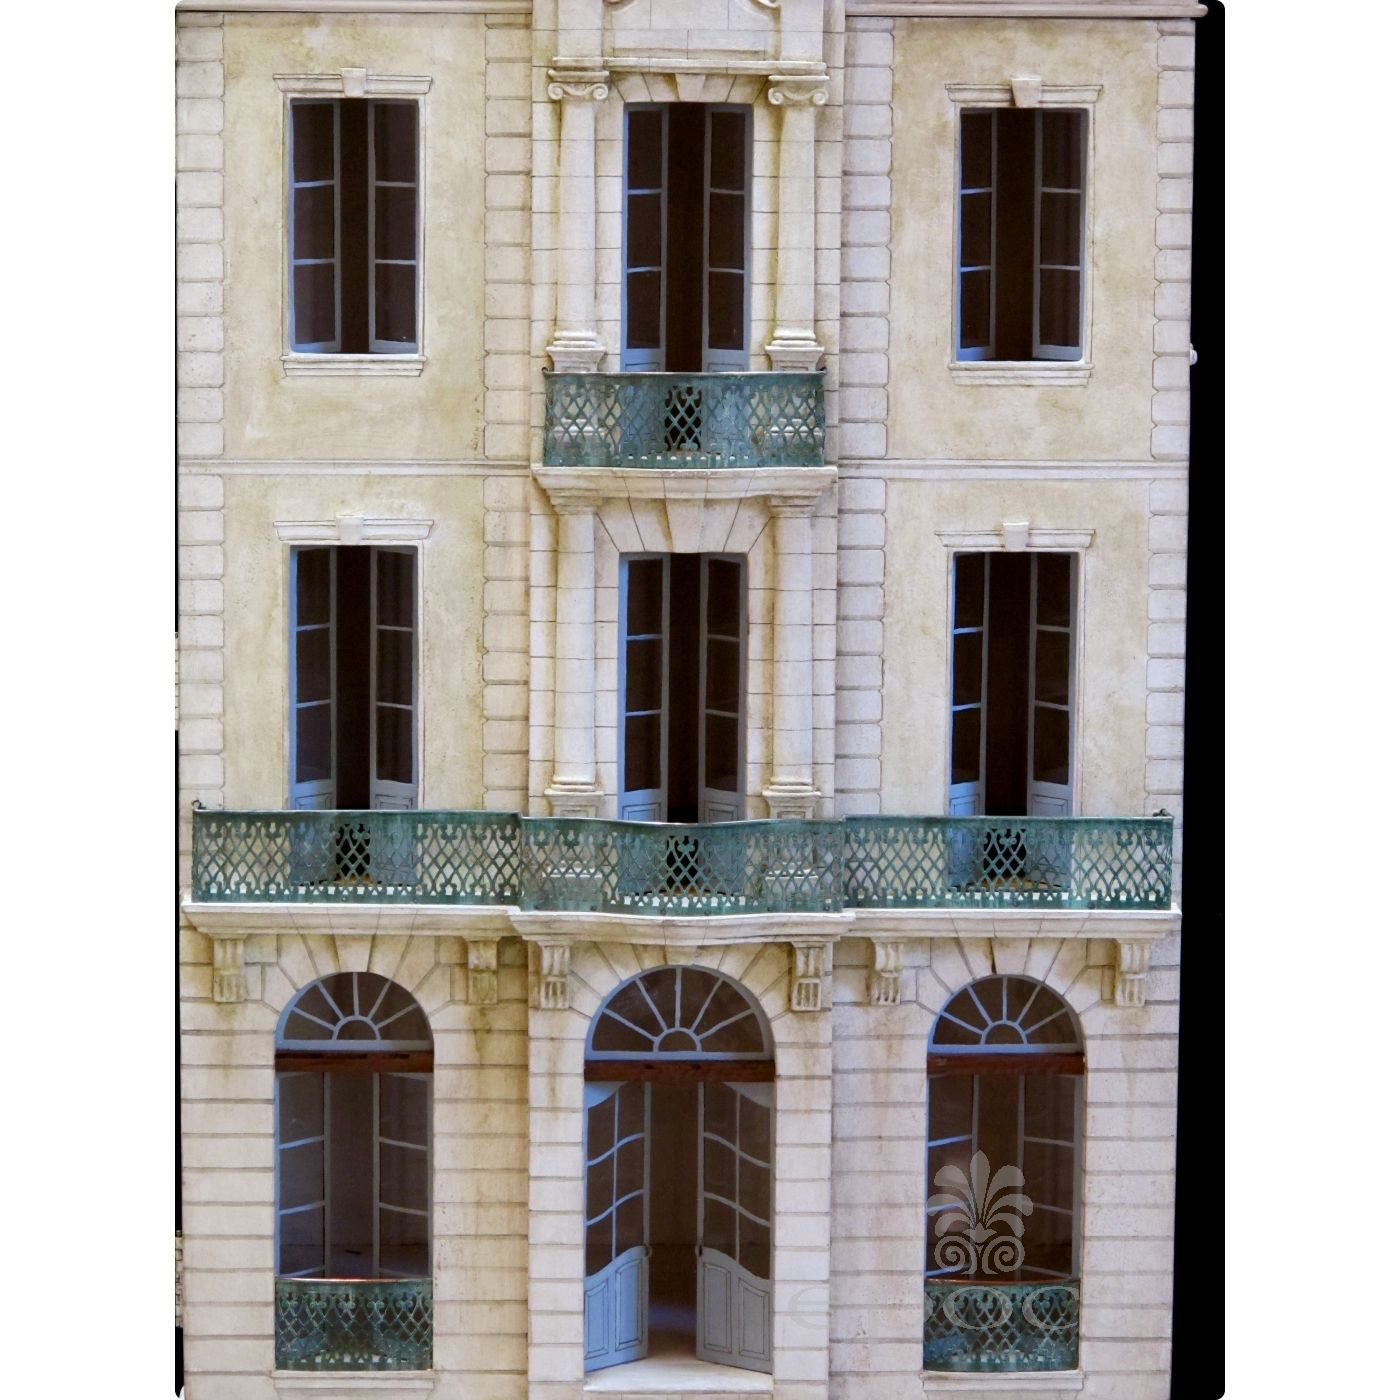 """rare and masterfully crafted wooden hand painted doll house/cabinet of a stately french chateau """"Chateau Blanche"""" by famed artisans Eric & Carole Lansdown"""